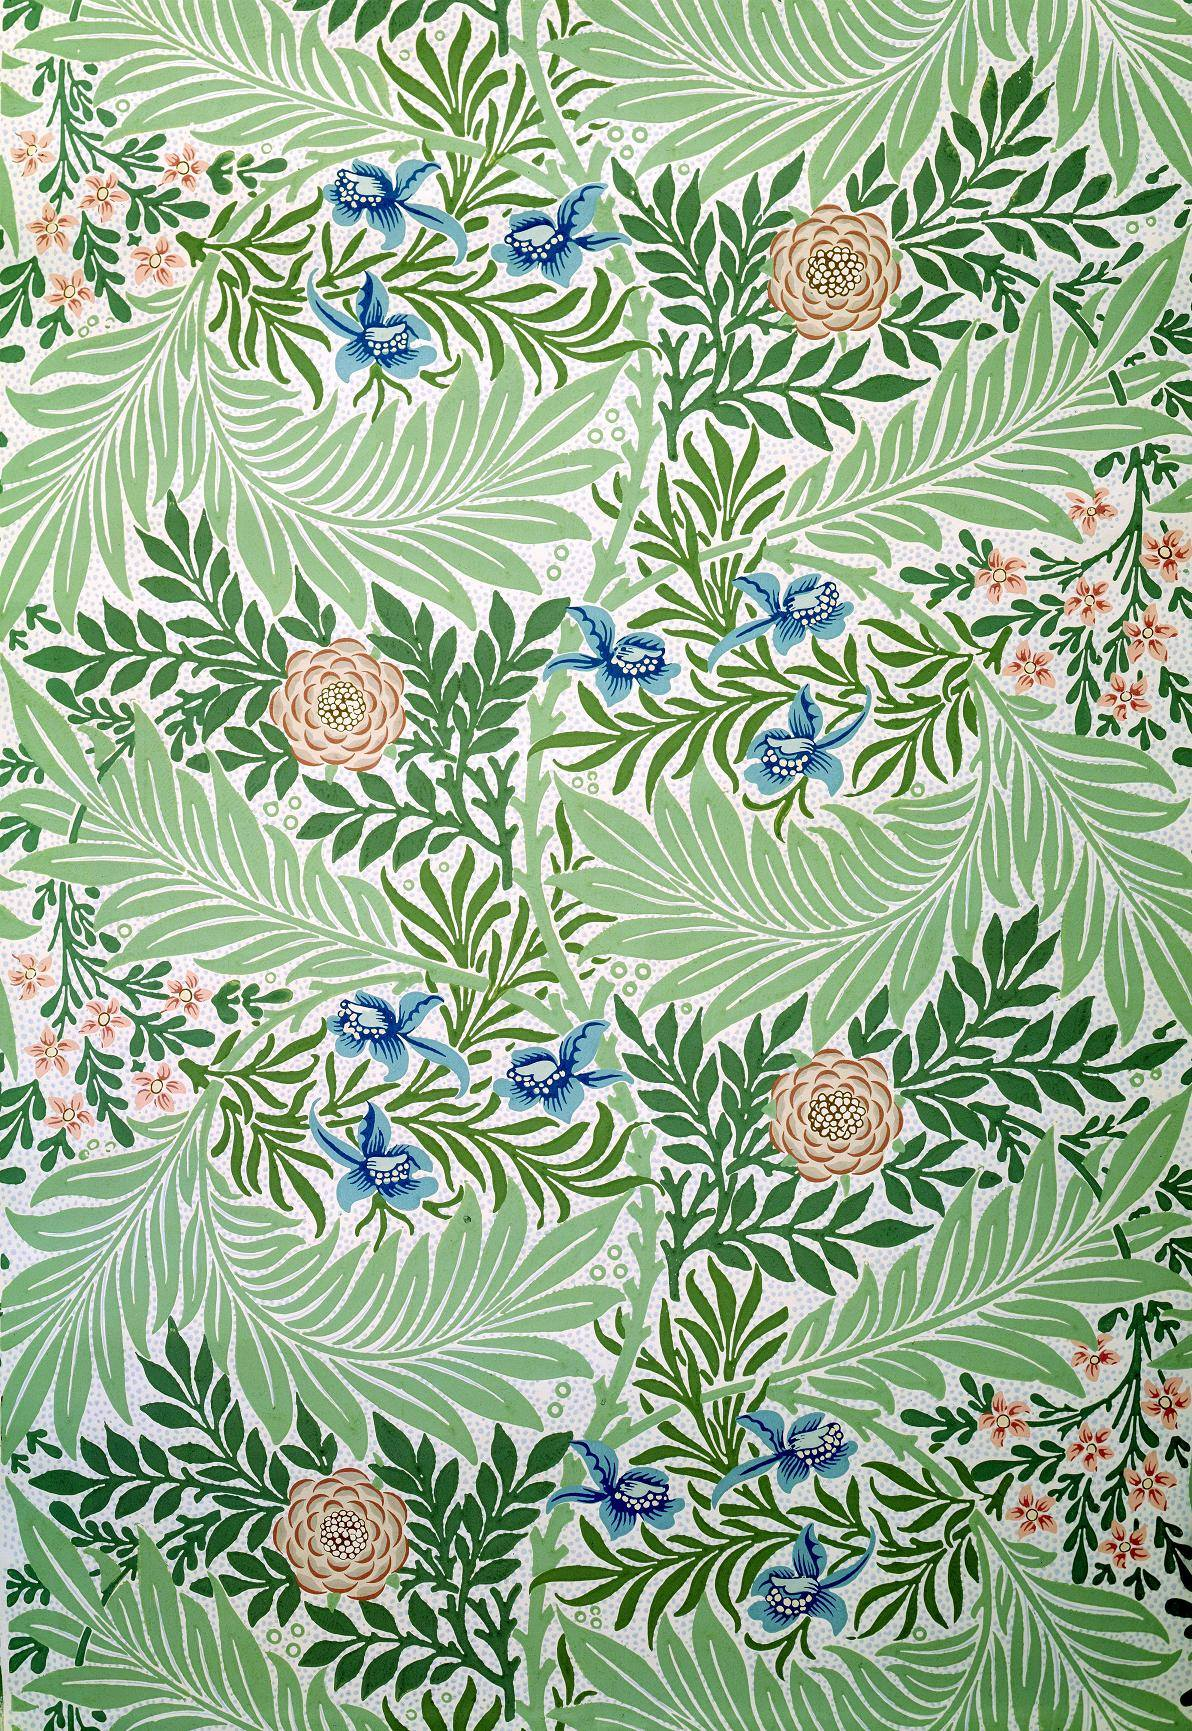 Daily Art Story Timeless Designs Of William Morris